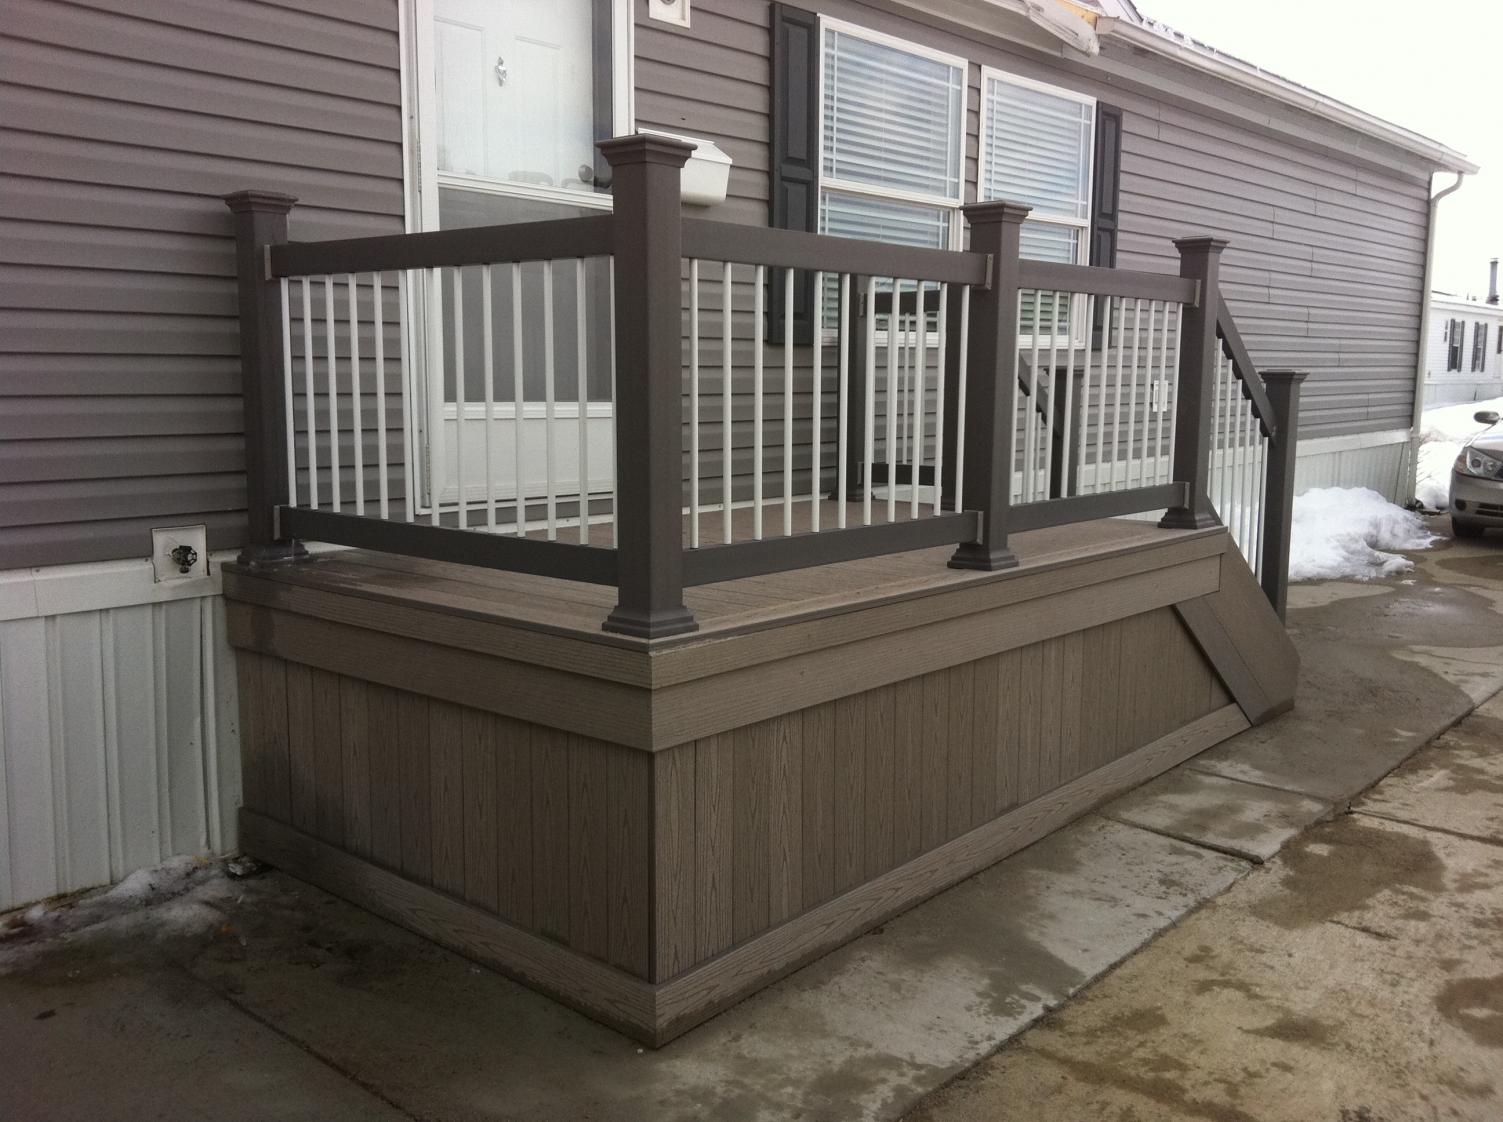 veranda decking decks fencing contractor talk within dimensions 1503 x 1122 ZNAWMLU